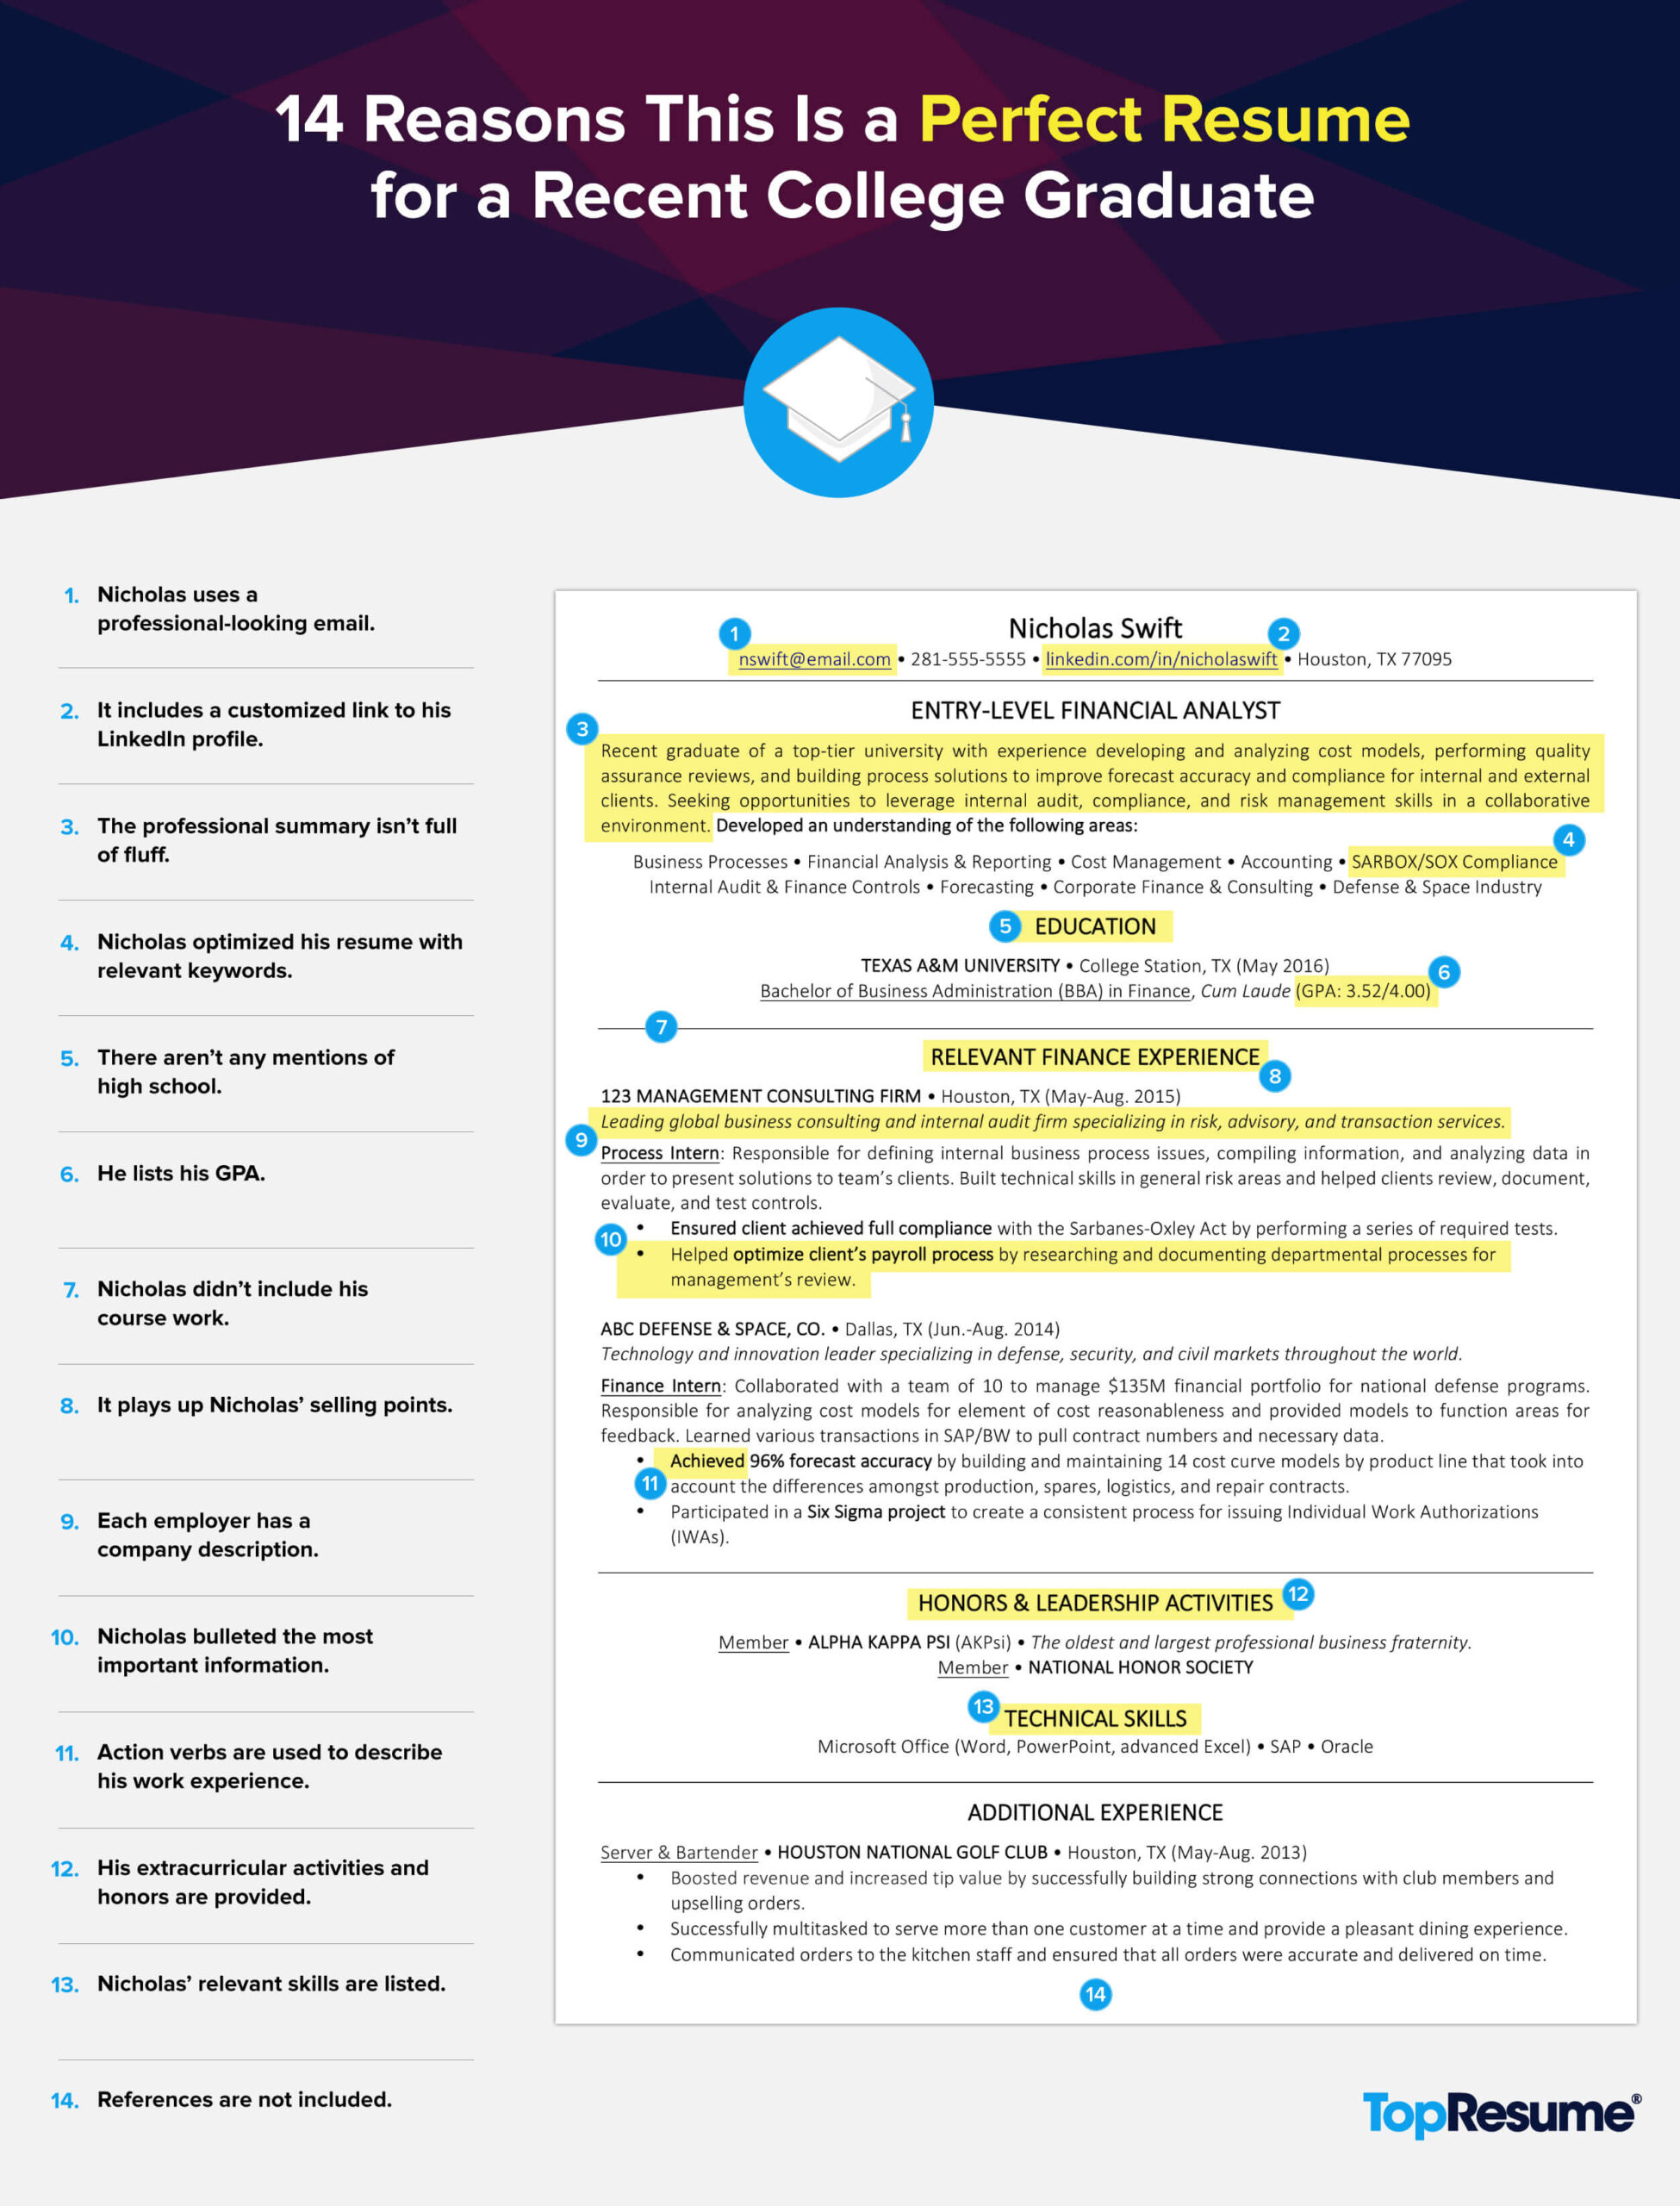 reasons this is perfect recent college graduate resume topresume example 160516graduate Resume Perfect College Resume Example